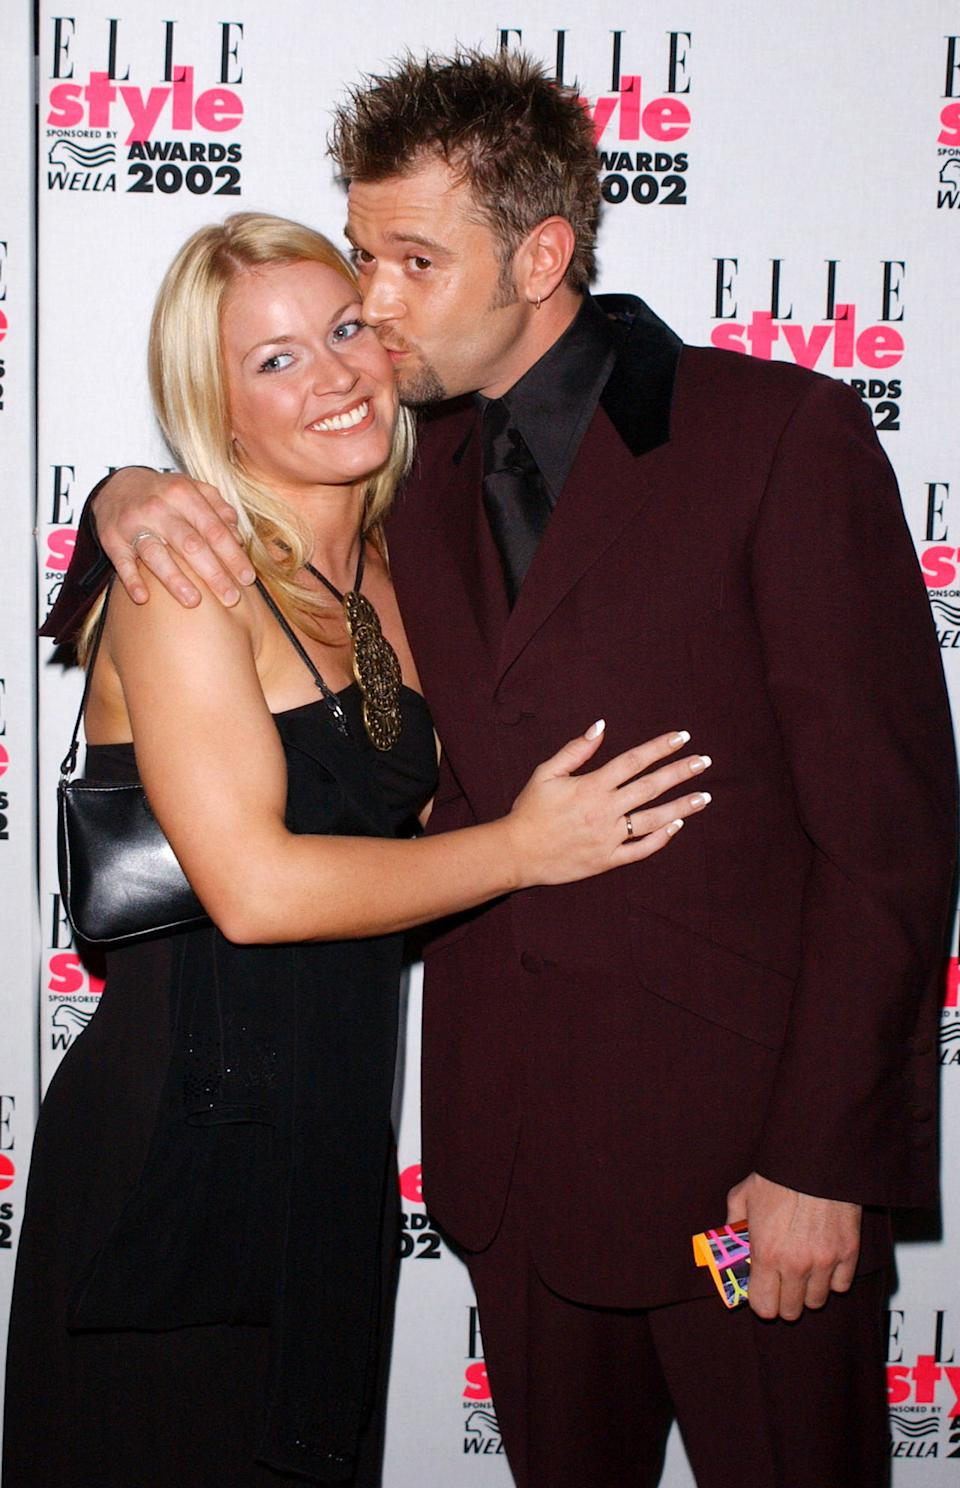 Darren Day and his girlfriend Adele at the Elle Style Awards at the Natural History Museum, London.